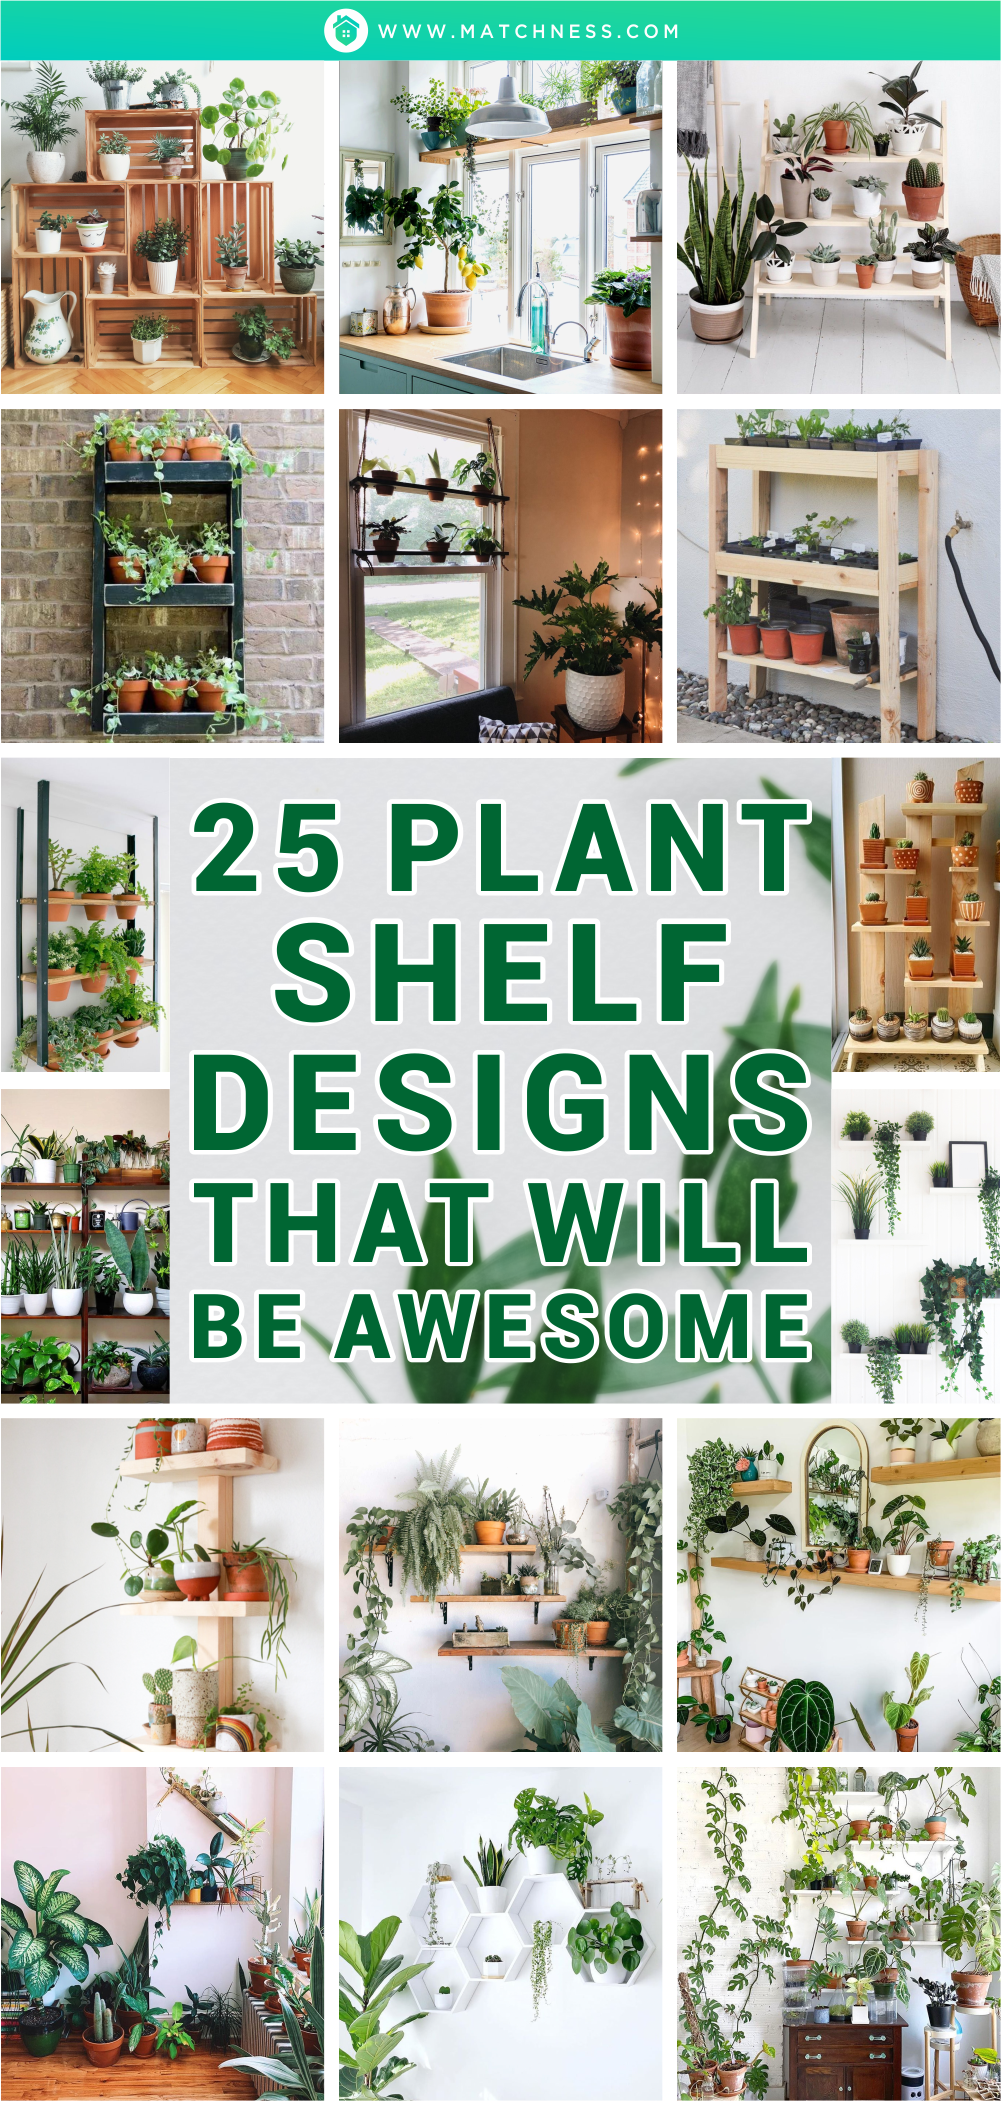 25-plant-shelf-designs-that-will-be-awesome1